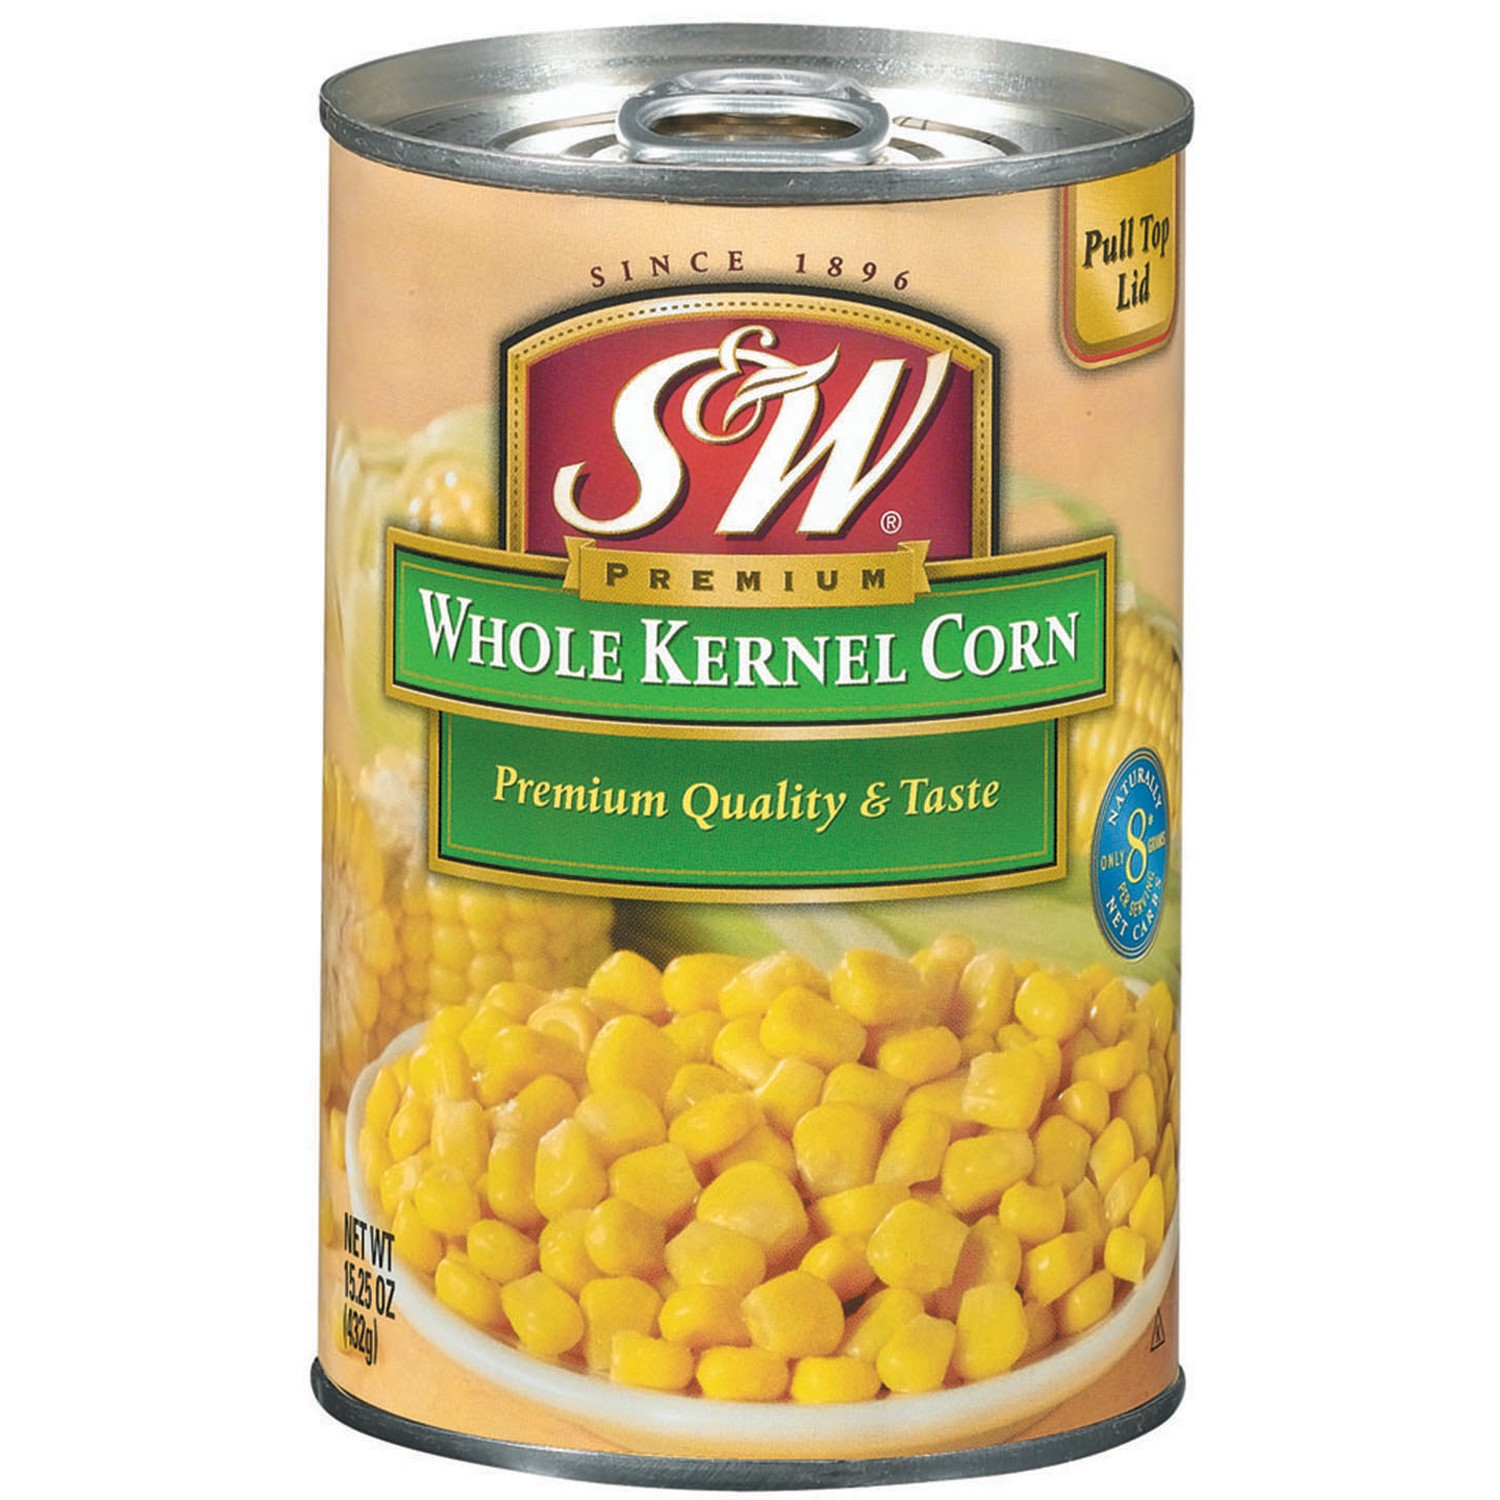 S&W? Whole Kernel Corn 15.25 oz. Pull-Top Can